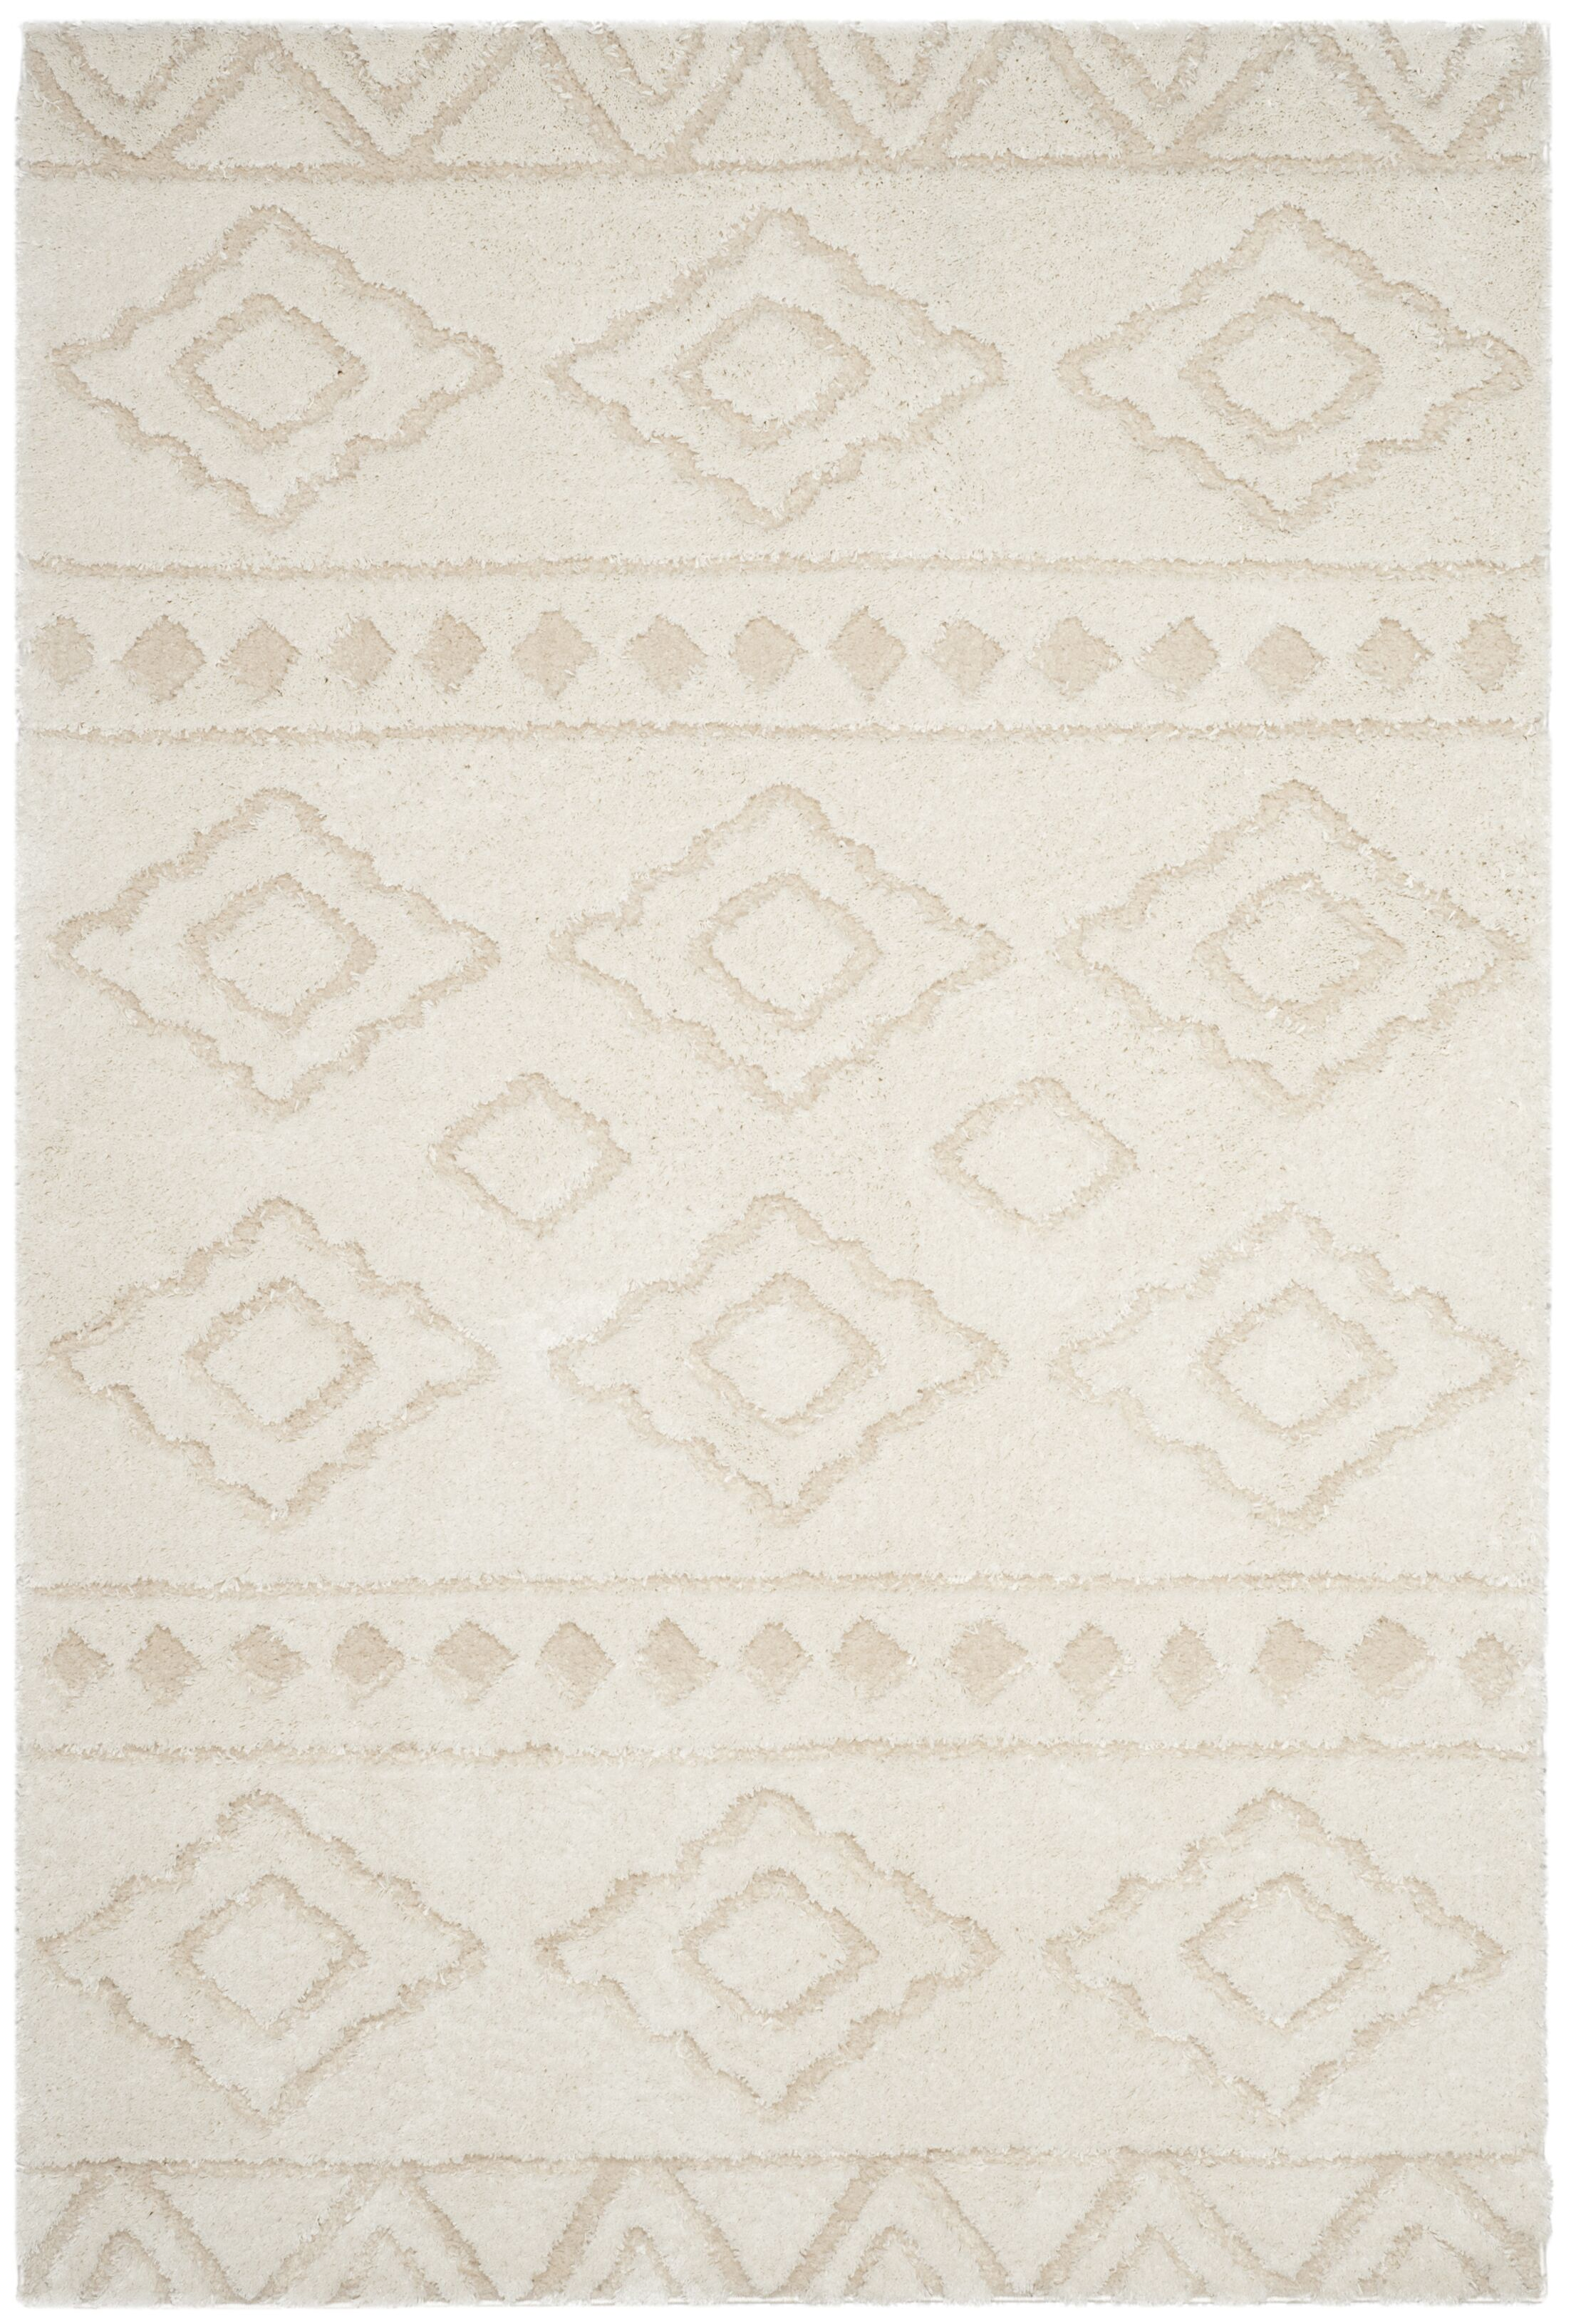 Albers Ivory Area Rug Rug Size: Round 6'7